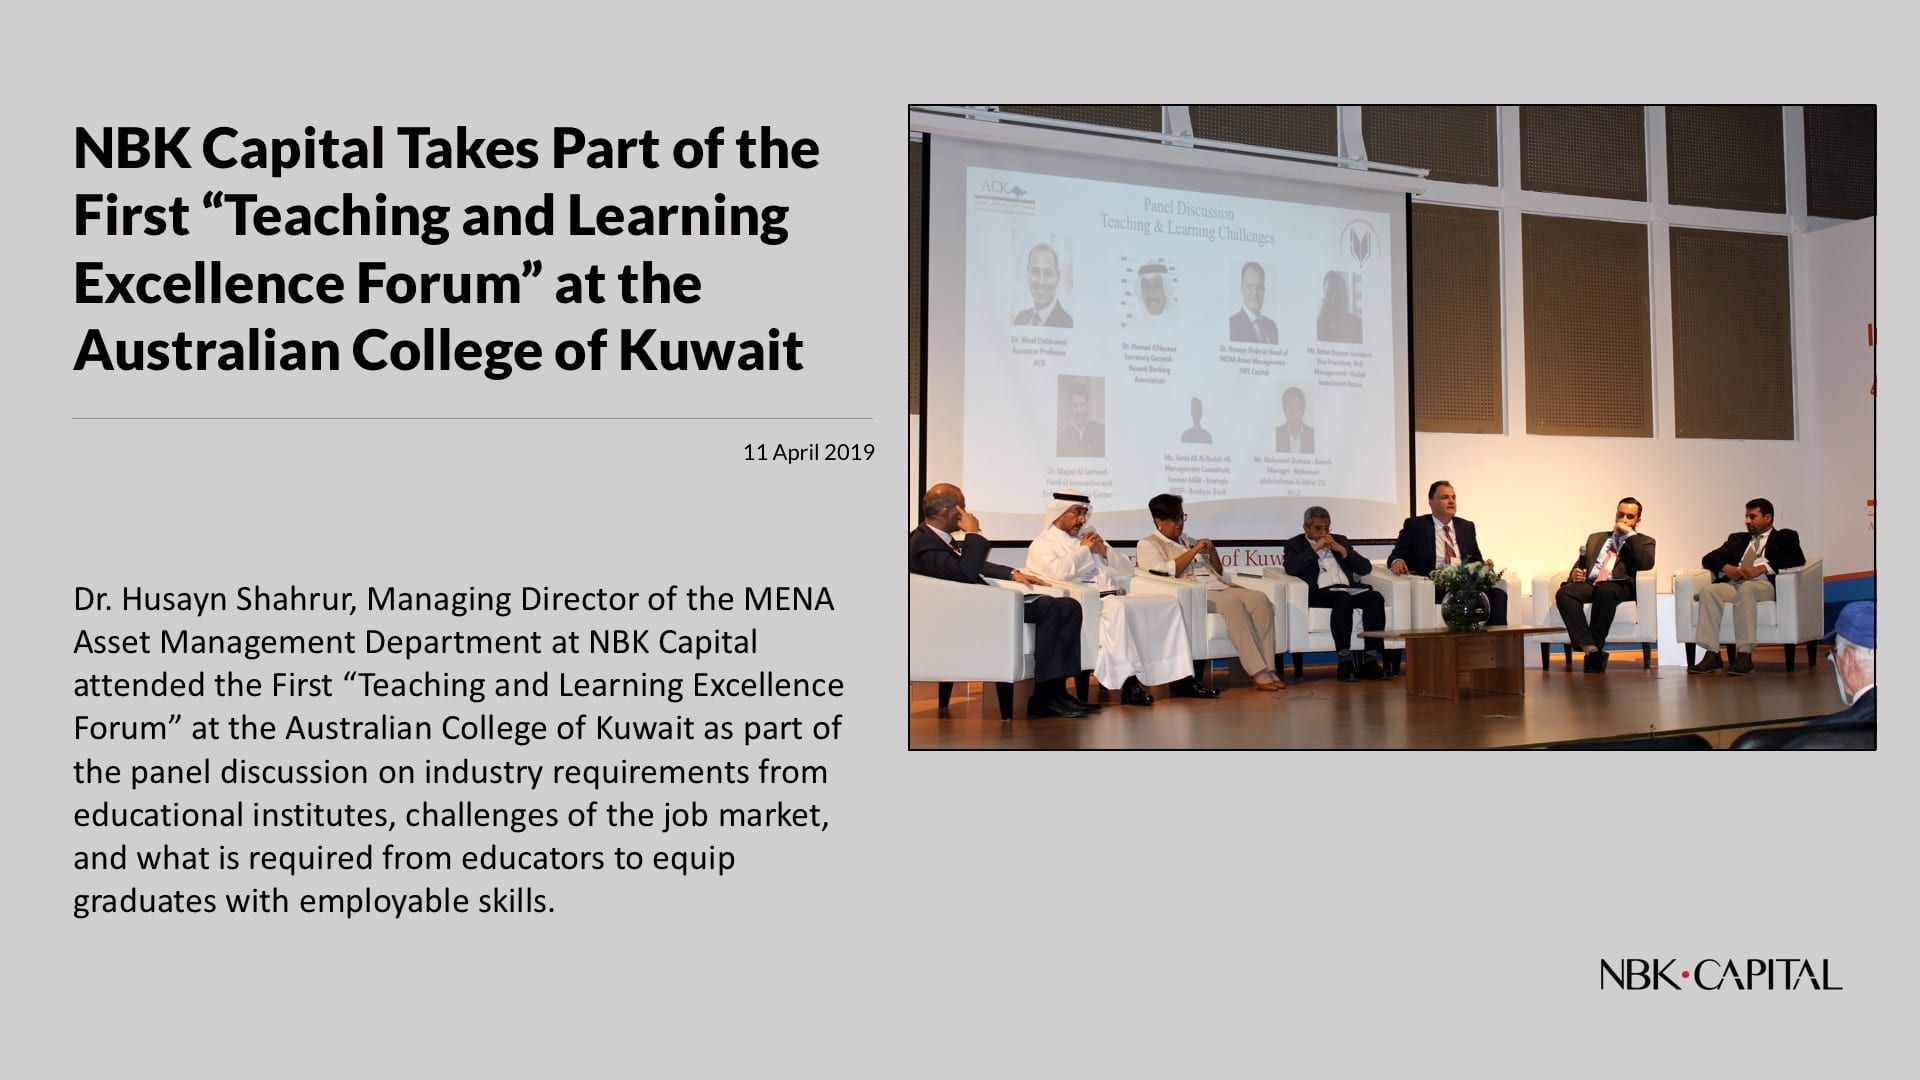 """NBK Capital Takes Part of the First """"Teaching and Learning Excellence Forum"""" at the Australian College of Kuwait"""